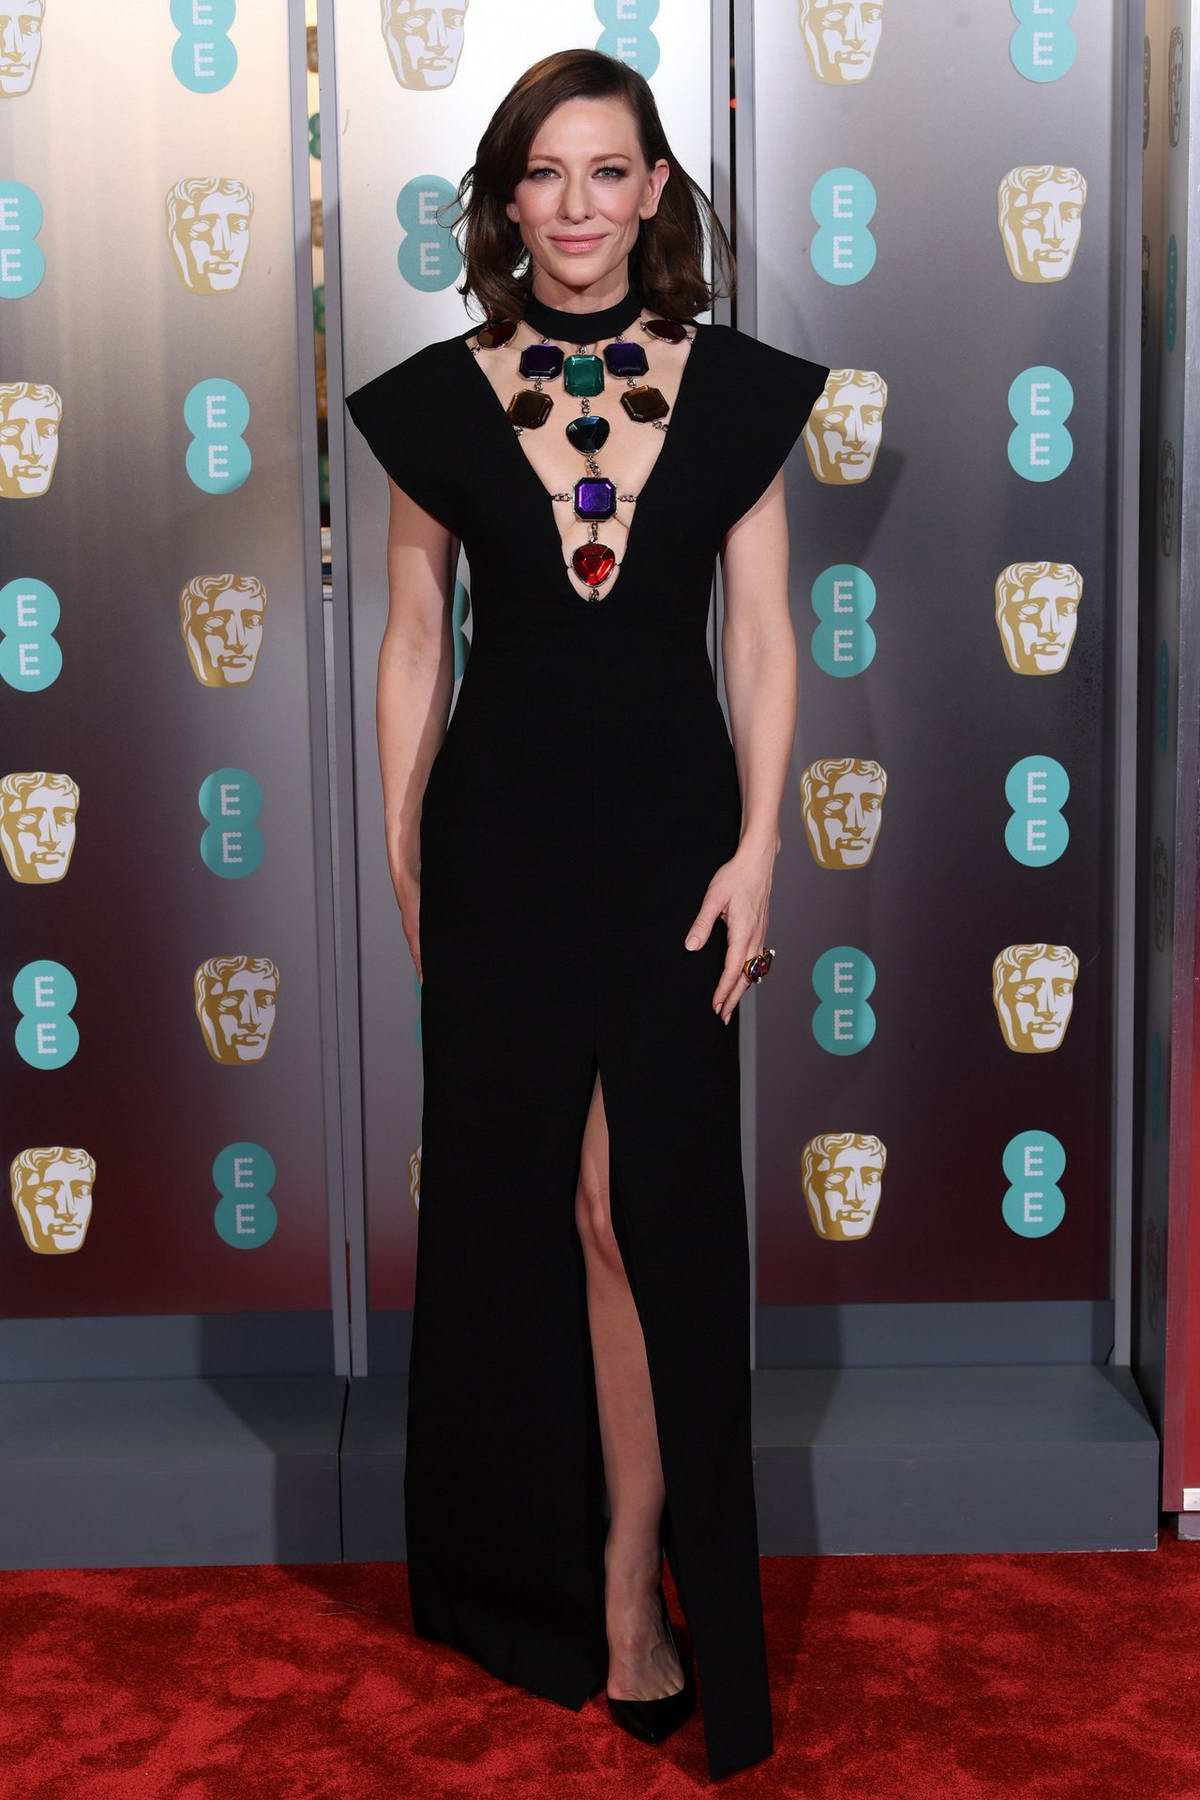 Cate Blanchett attends the 72nd EE British Academy Film Awards (BAFTA 2019) at Royal Albert Hall in London, UK